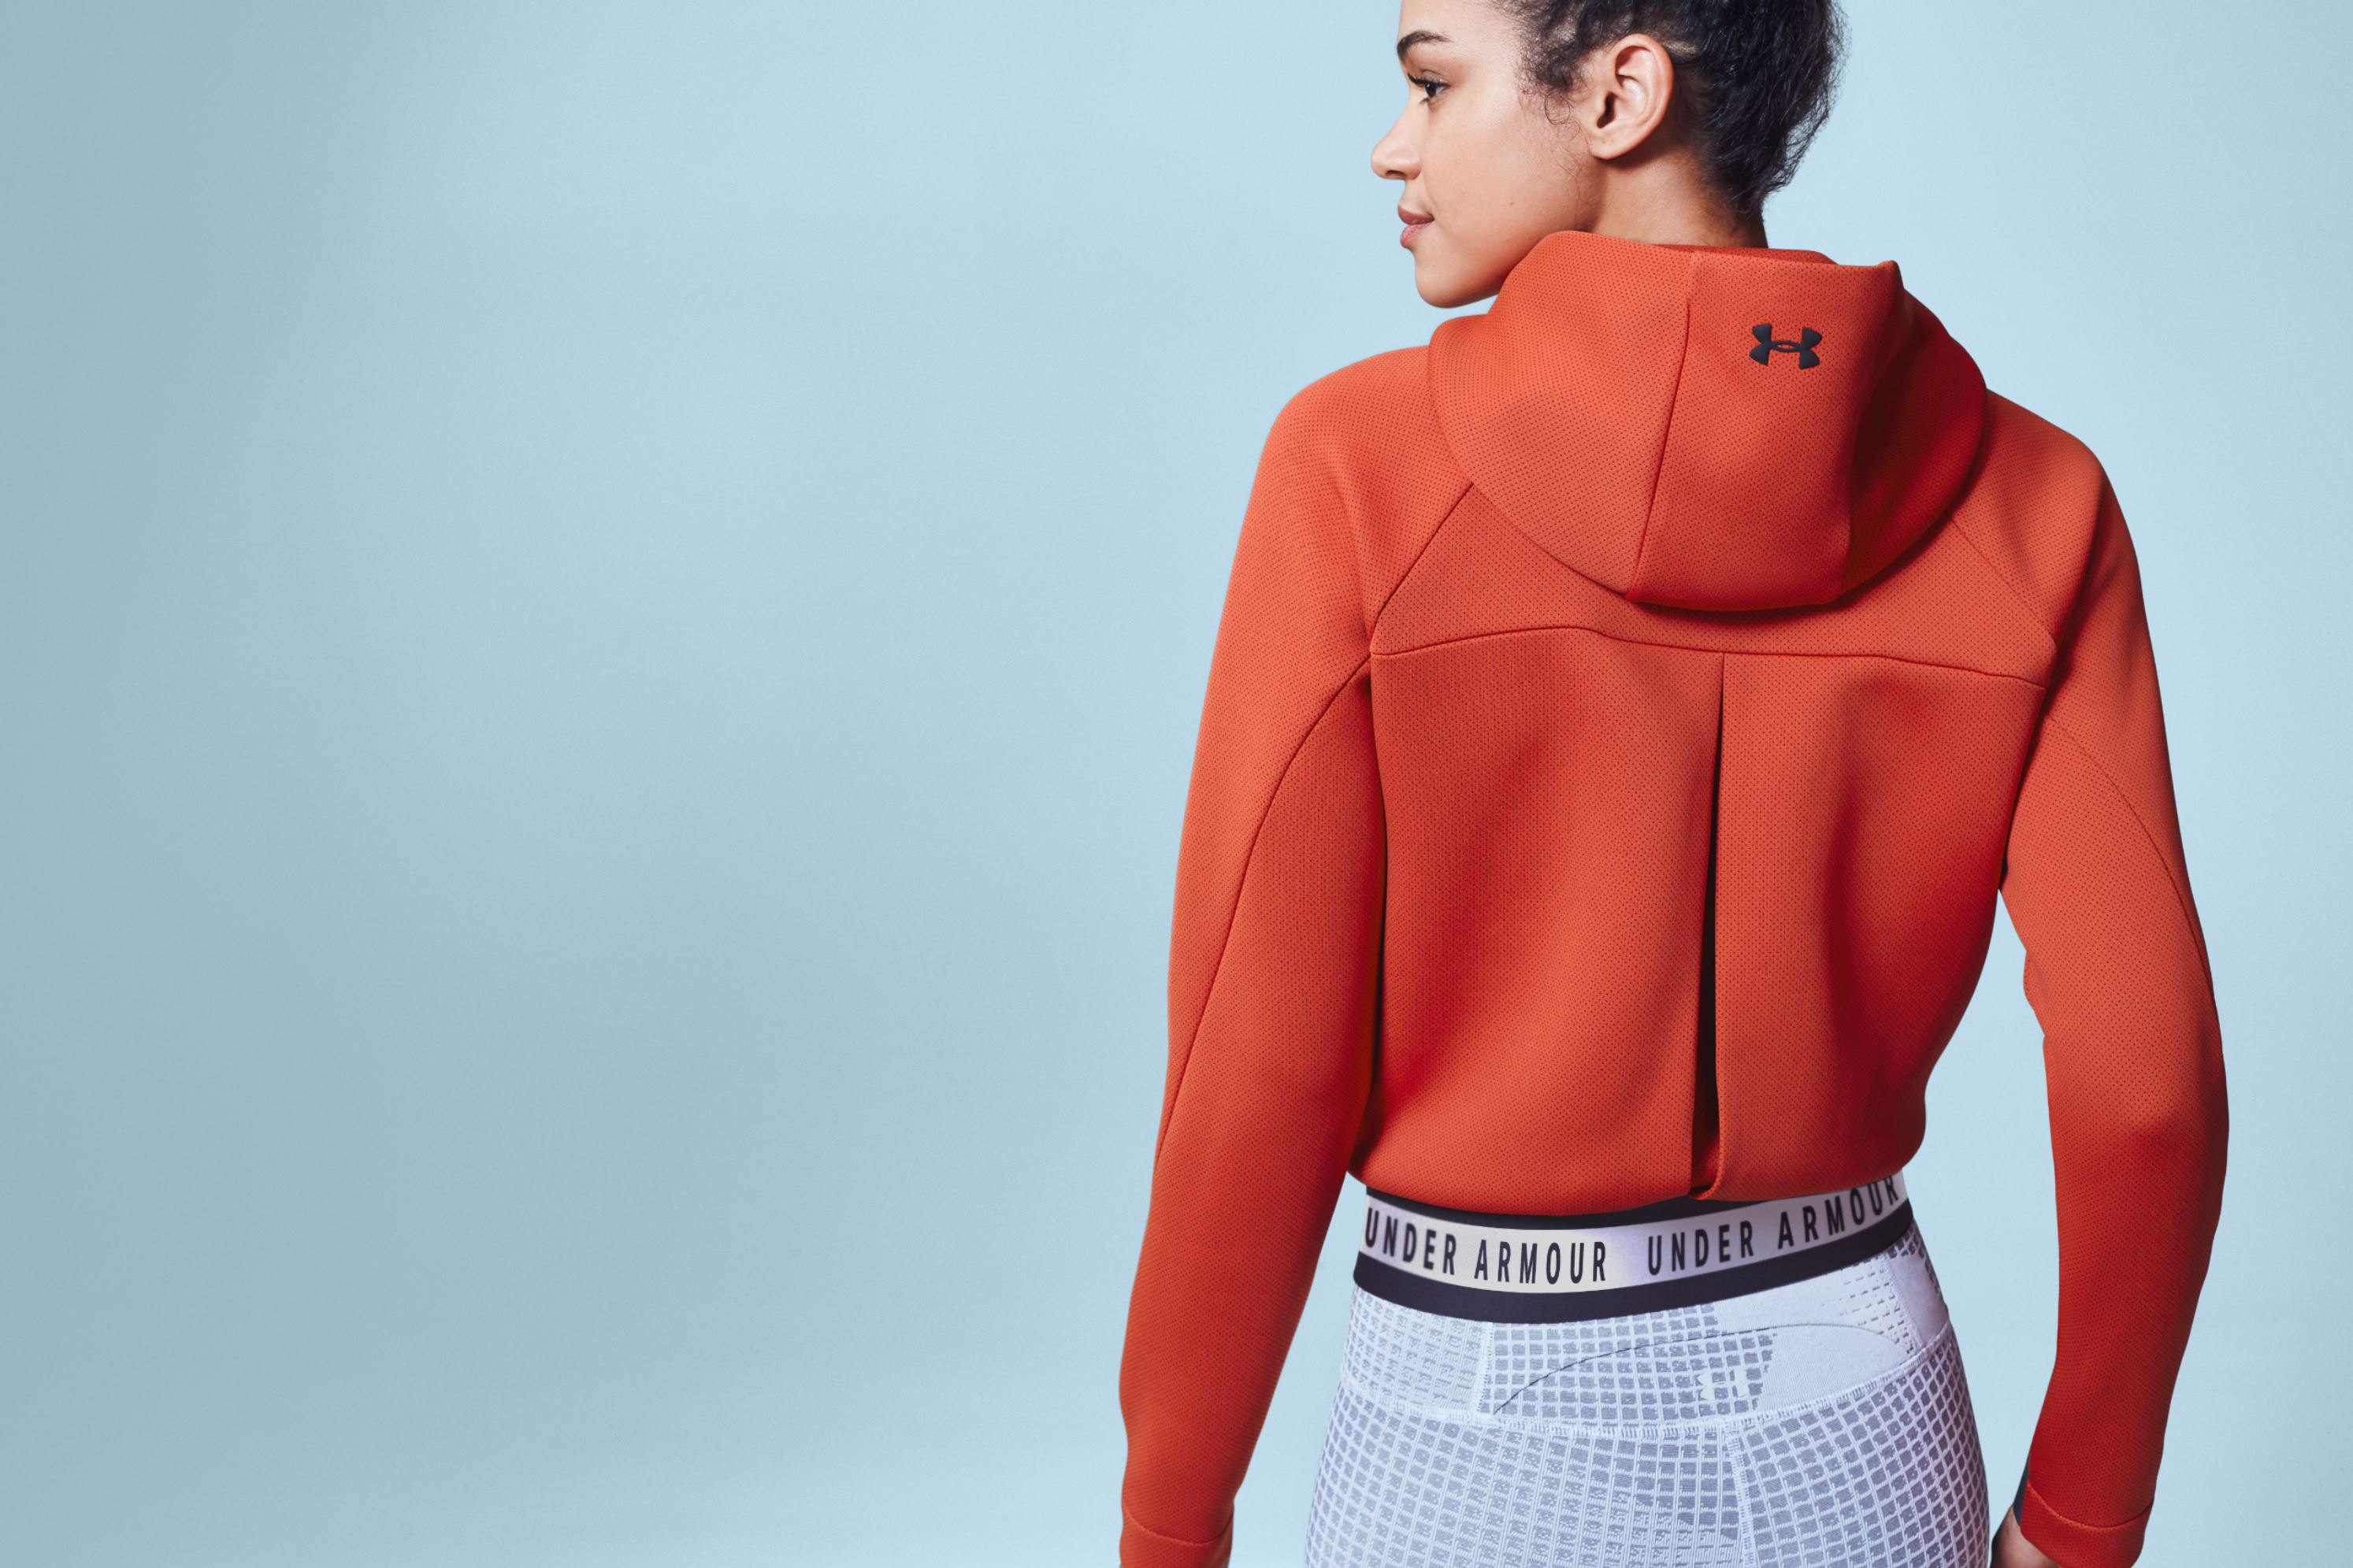 under armour unstoppable MOVE collection womens